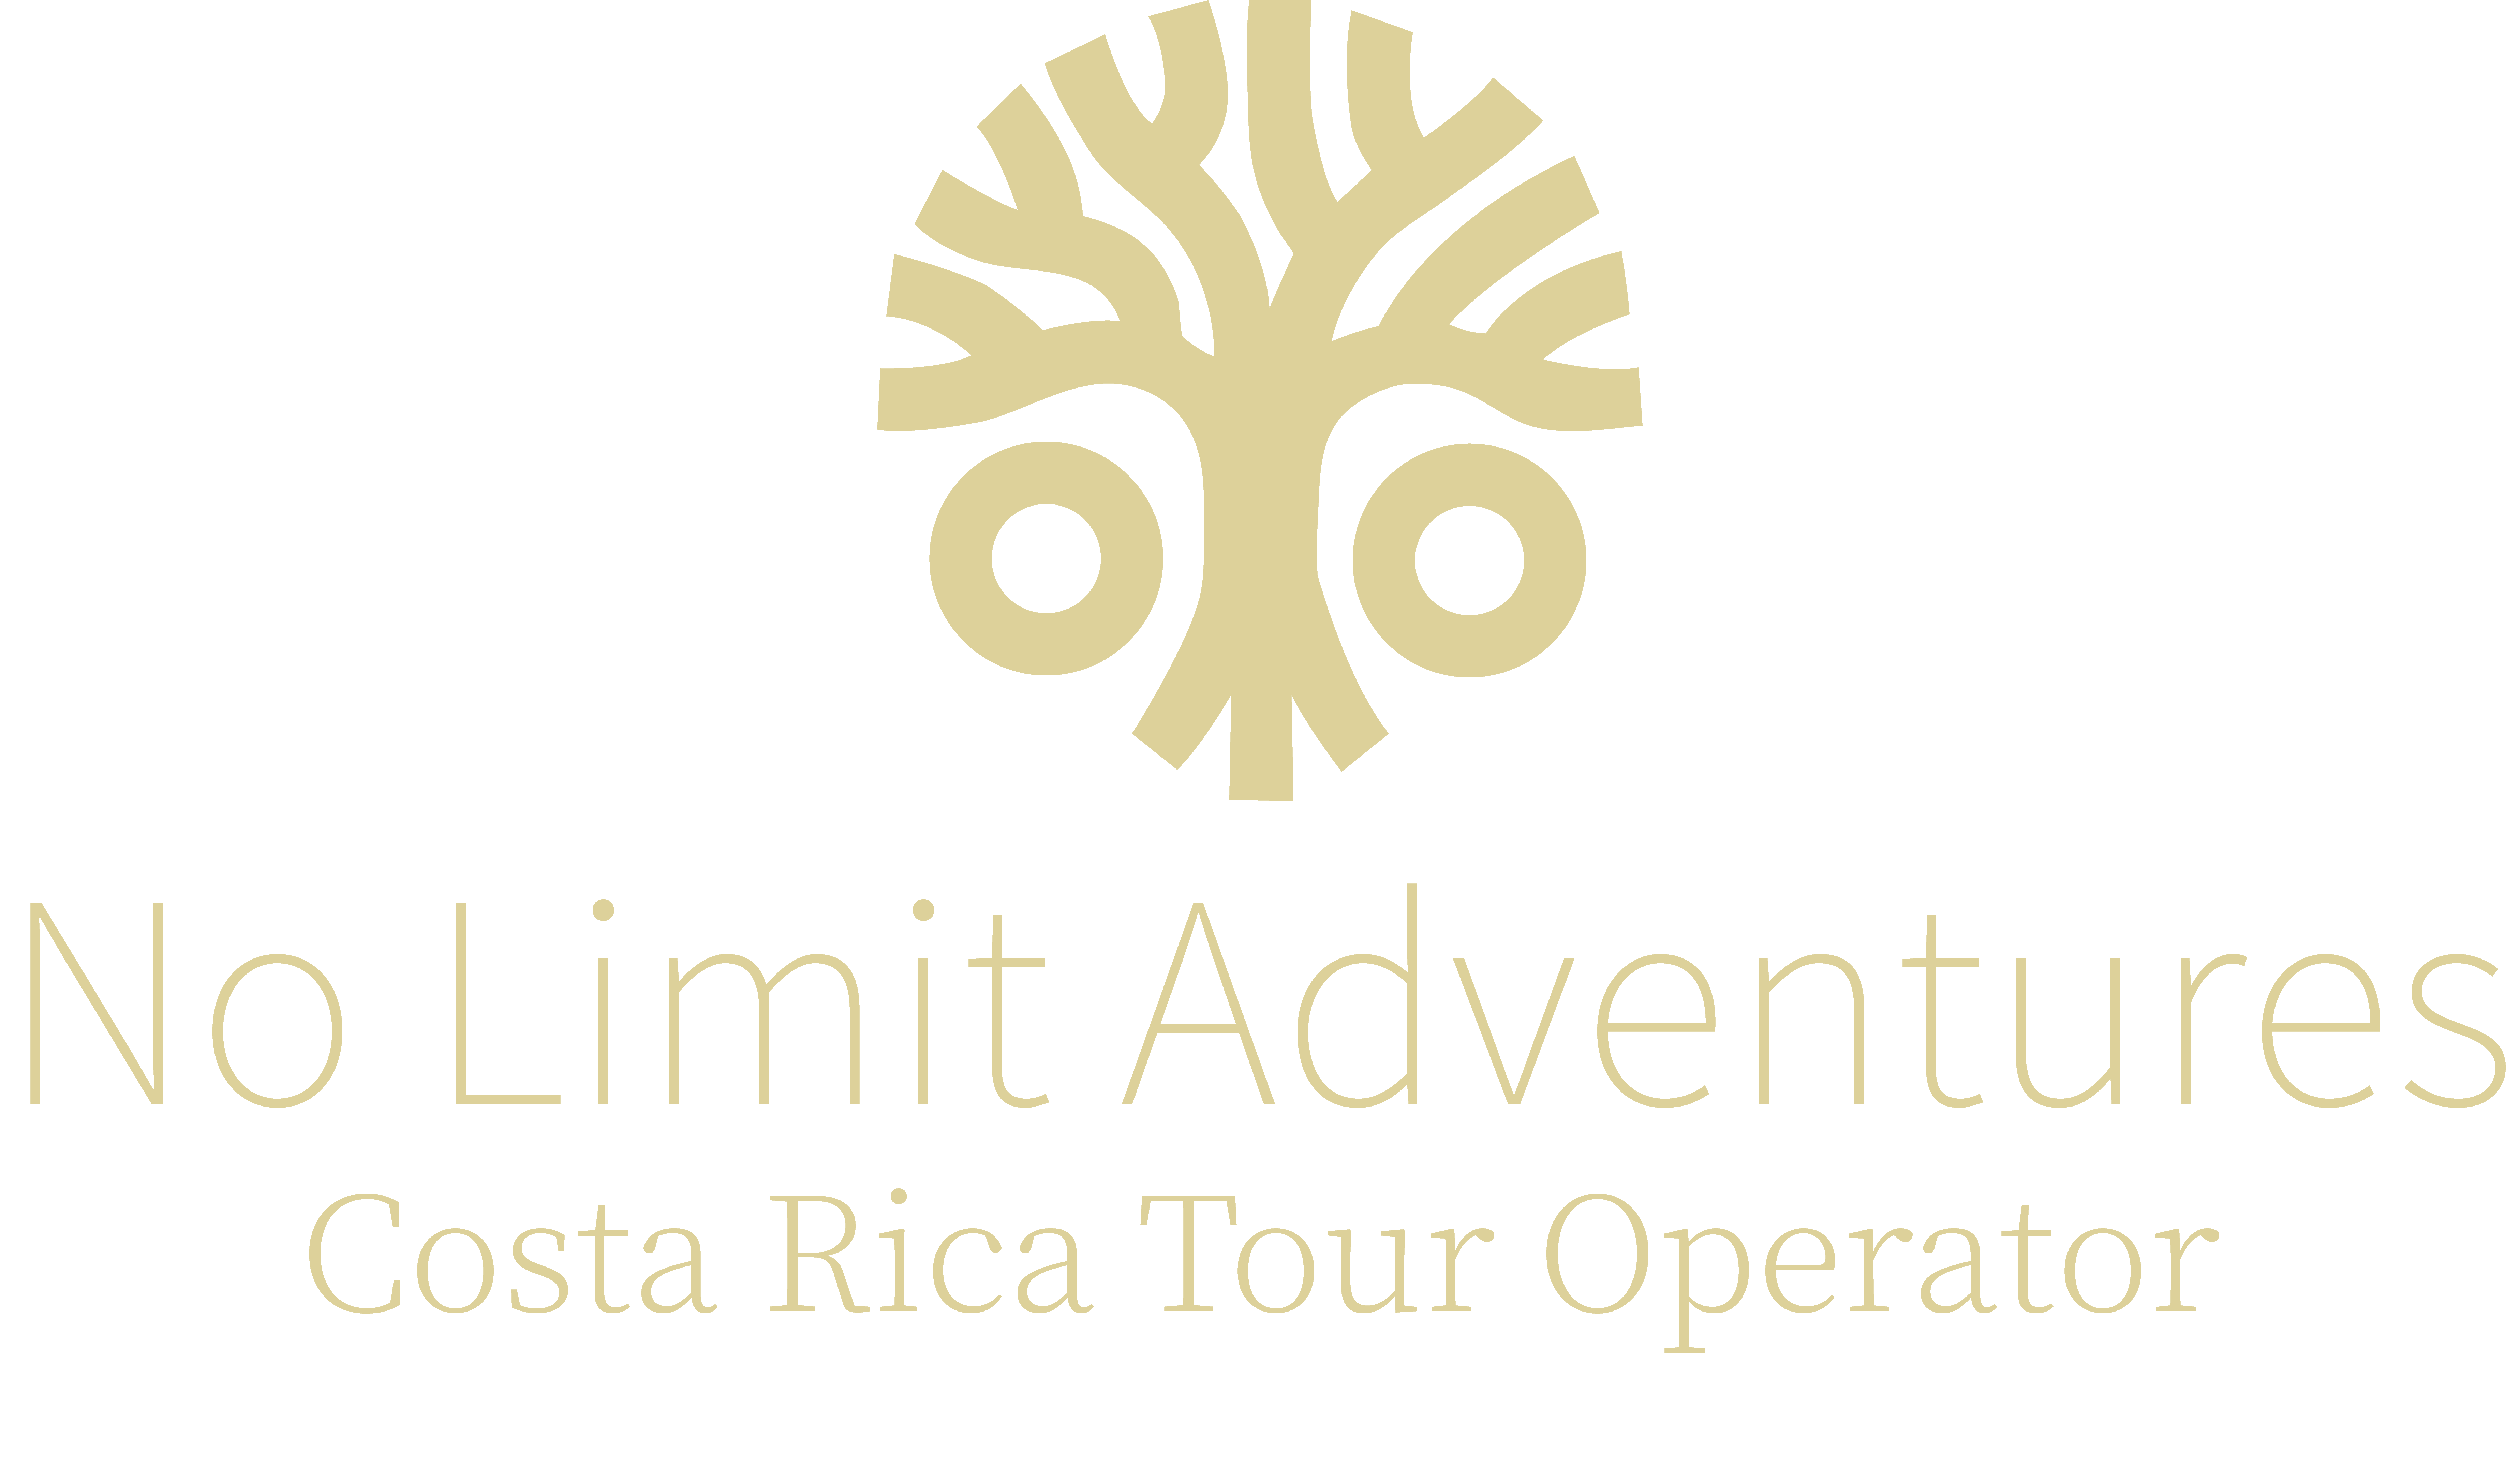 No Limit Adventures Costa Rica